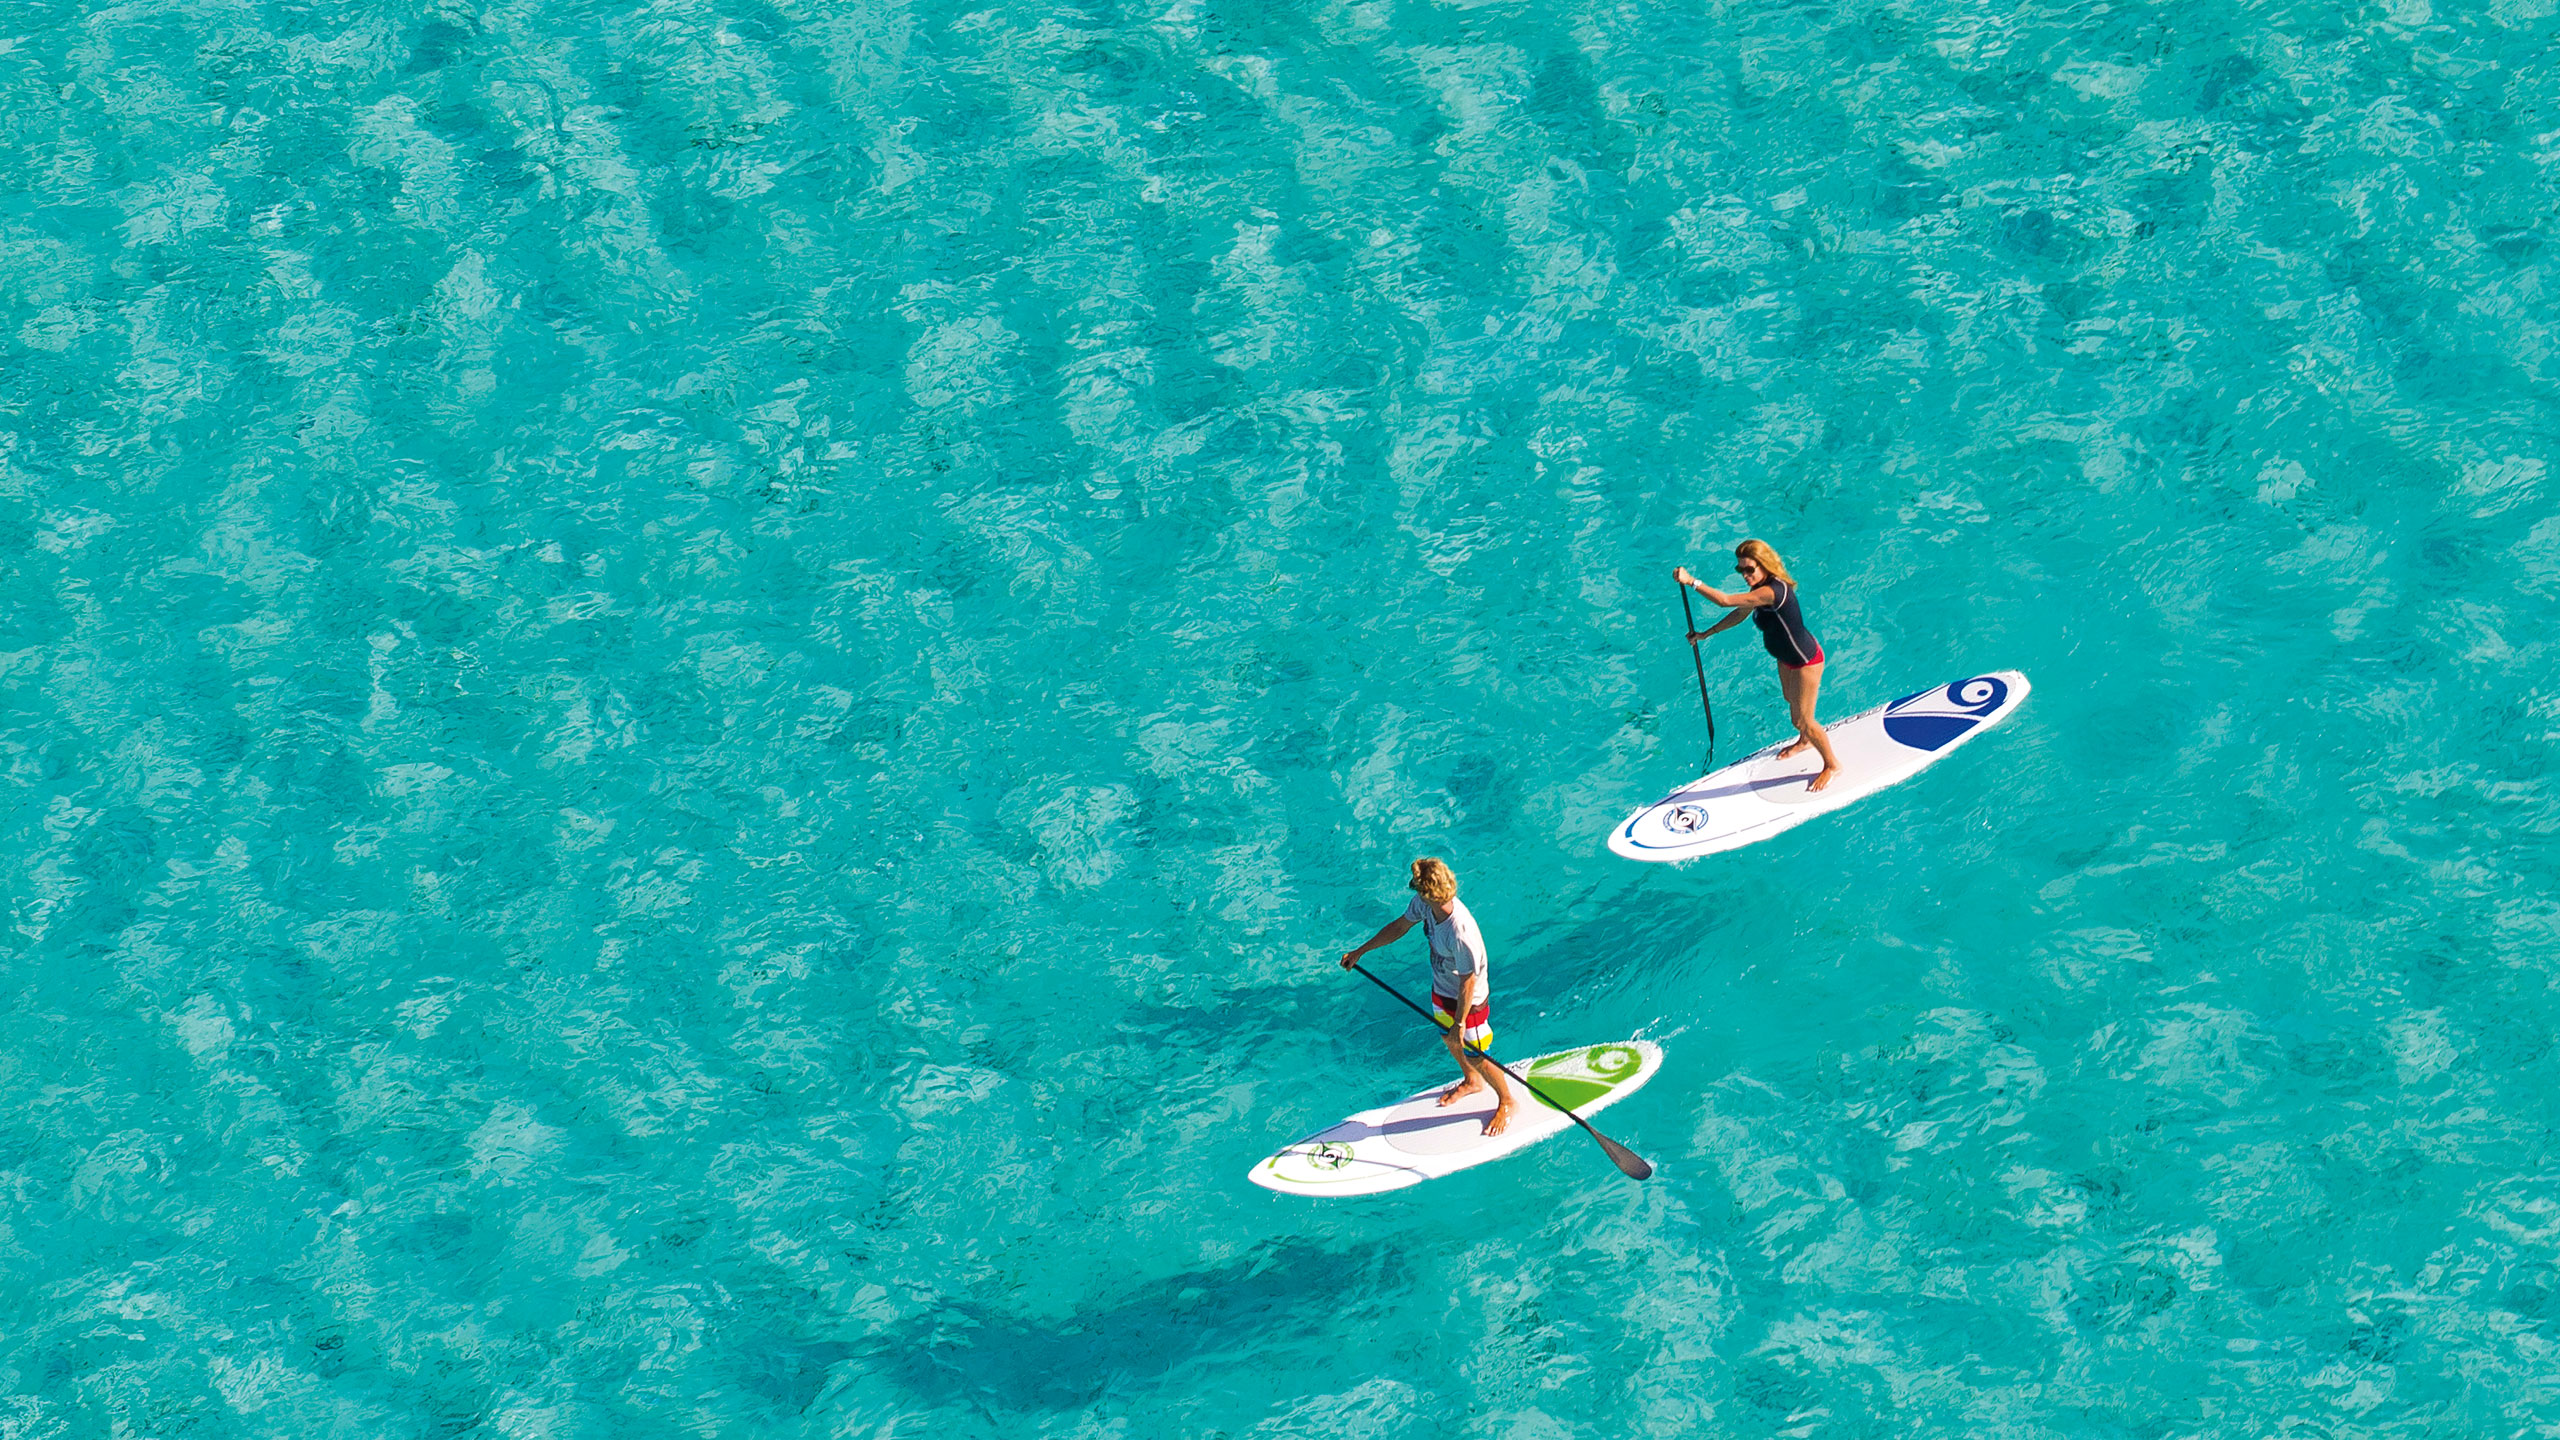 sup surfing wallpaper - photo #24